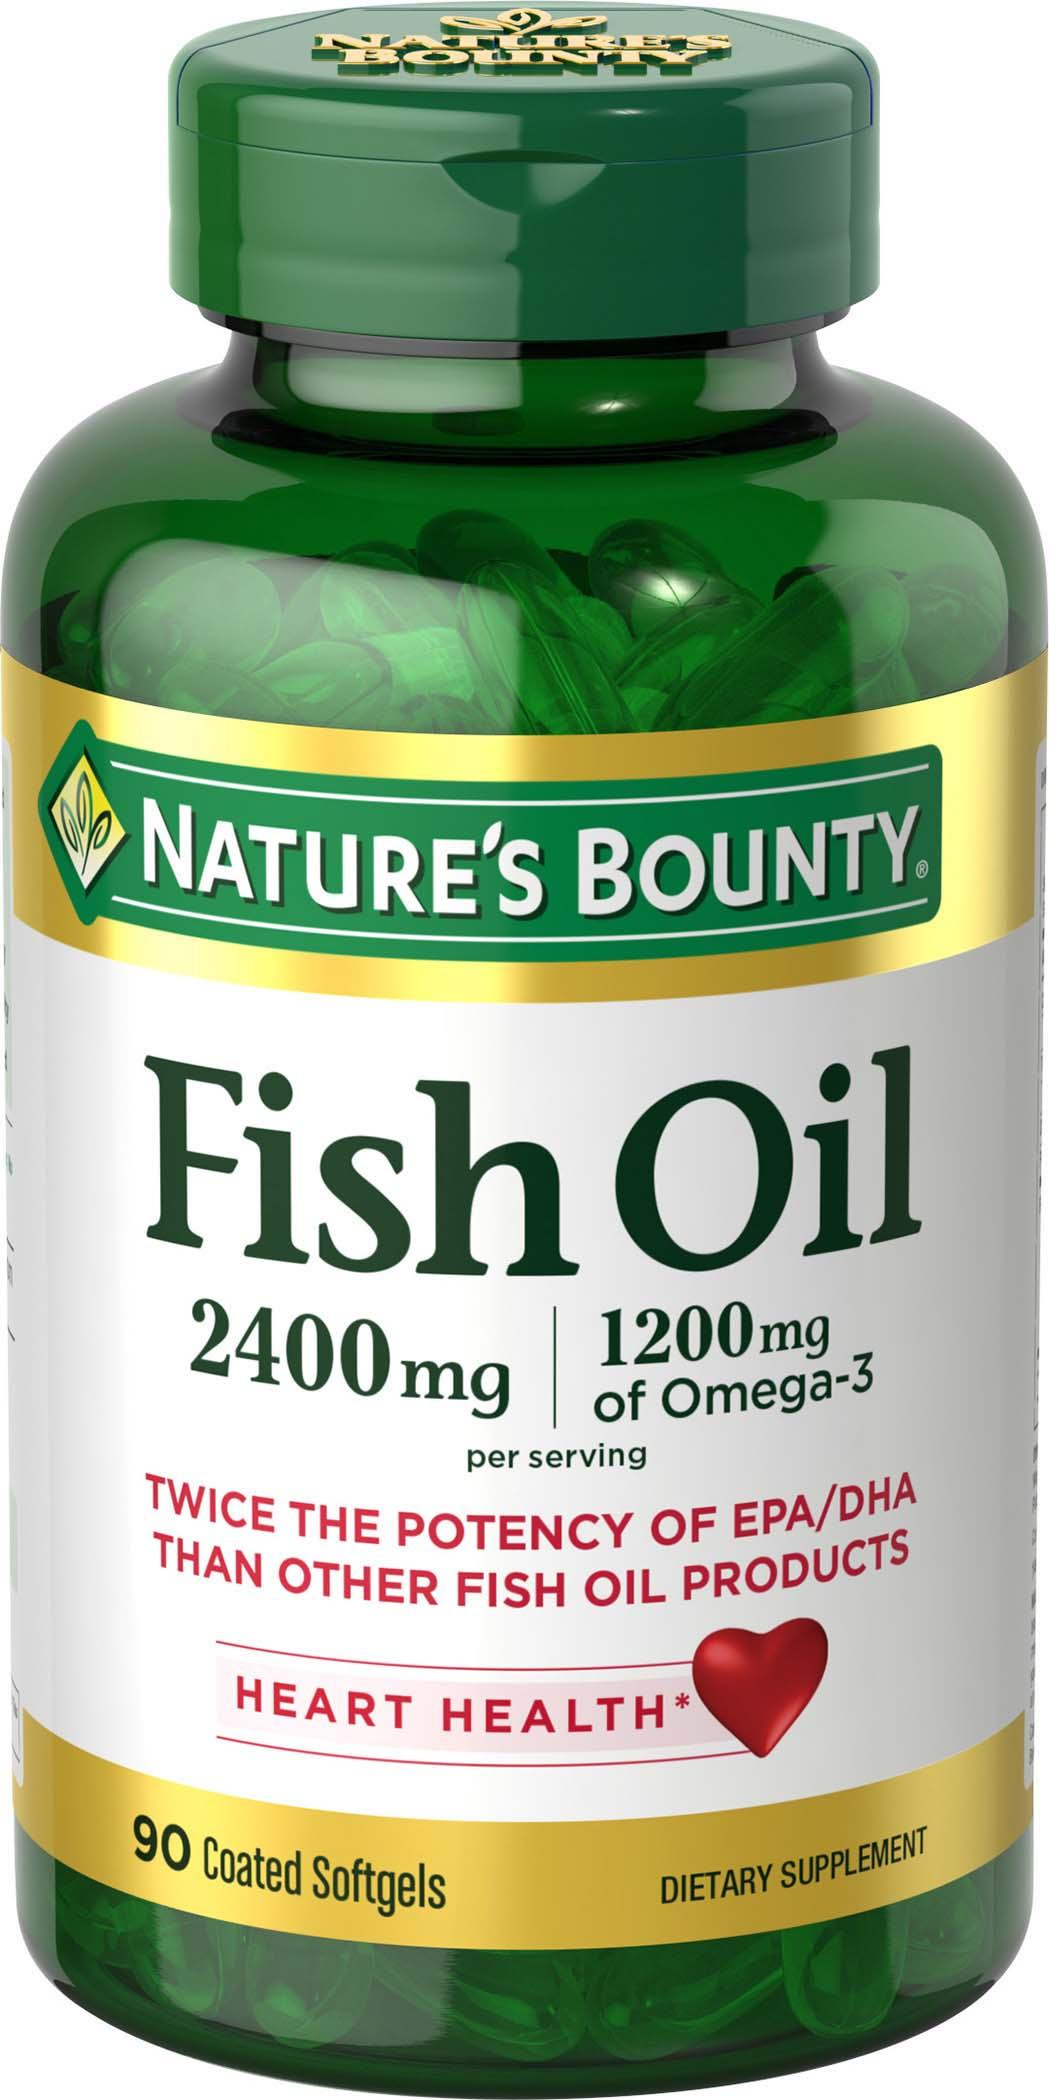 fish bounty amazon nature mg natures 2400 health manufacturer care cardiovascular supports ea